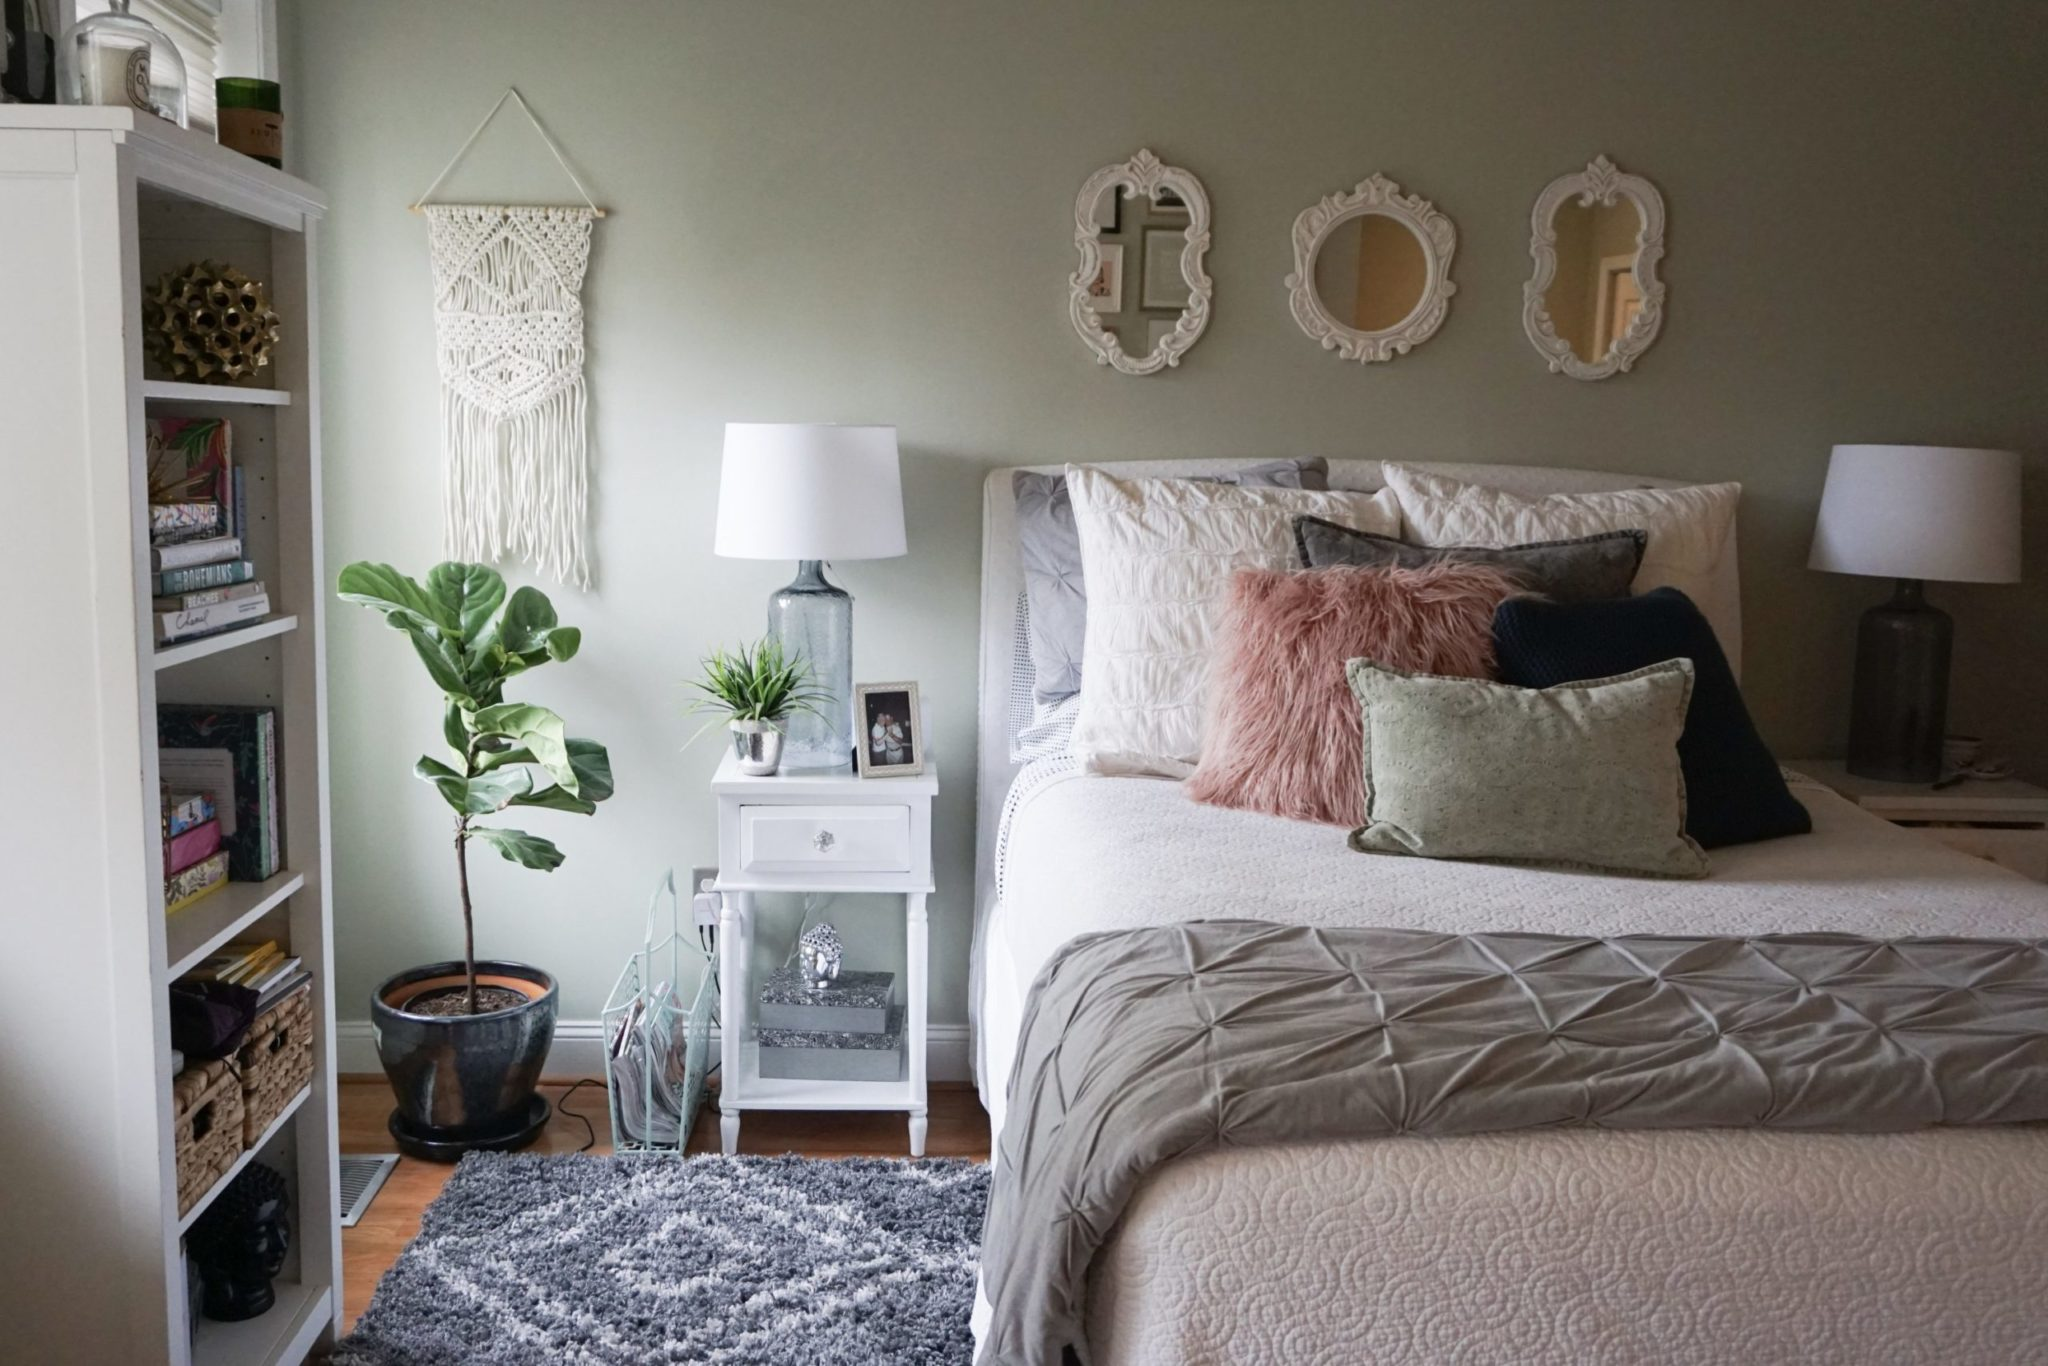 Look Inside My Home: A 20-Something's Shaw Apartment Filled With Target Finds